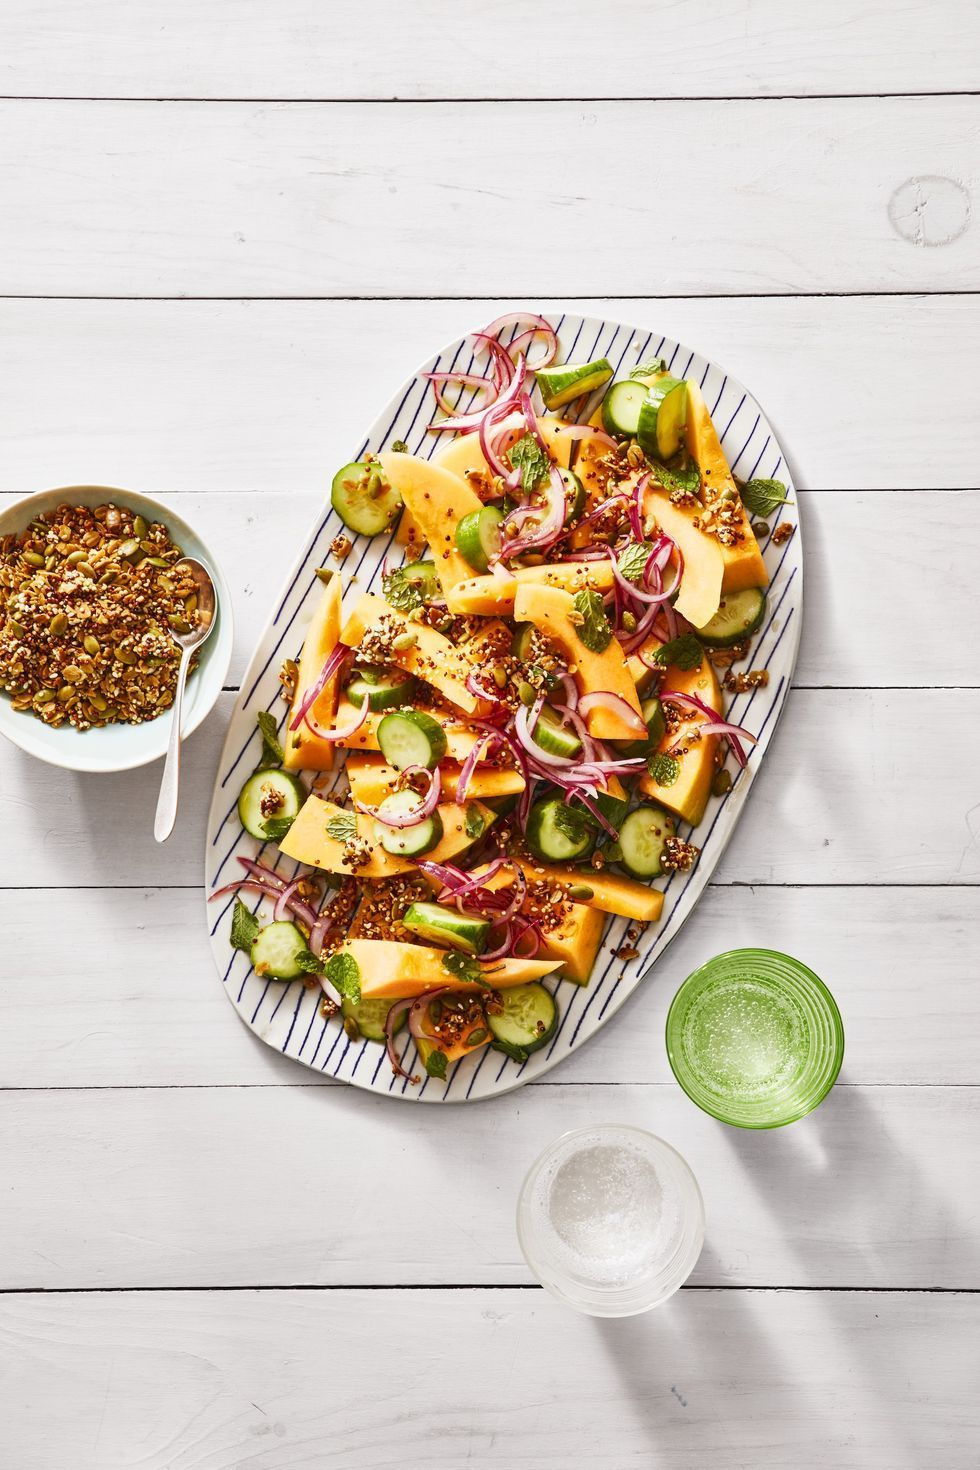 Best Cucumber And Cantaloupe Salad With Savory Quinoa Granola Recipe How To Make Cucumber And Cantaloupe Salad With Savory Quinoa Granola The cantaloupe, rockmelon (australia and new zealand), sweet melon, or spanspek (south africa) is a melon that is a variety of the muskmelon species (cucumis melo) from the family cucurbitaceae. cucumber and cantaloupe salad with savory quinoa granola